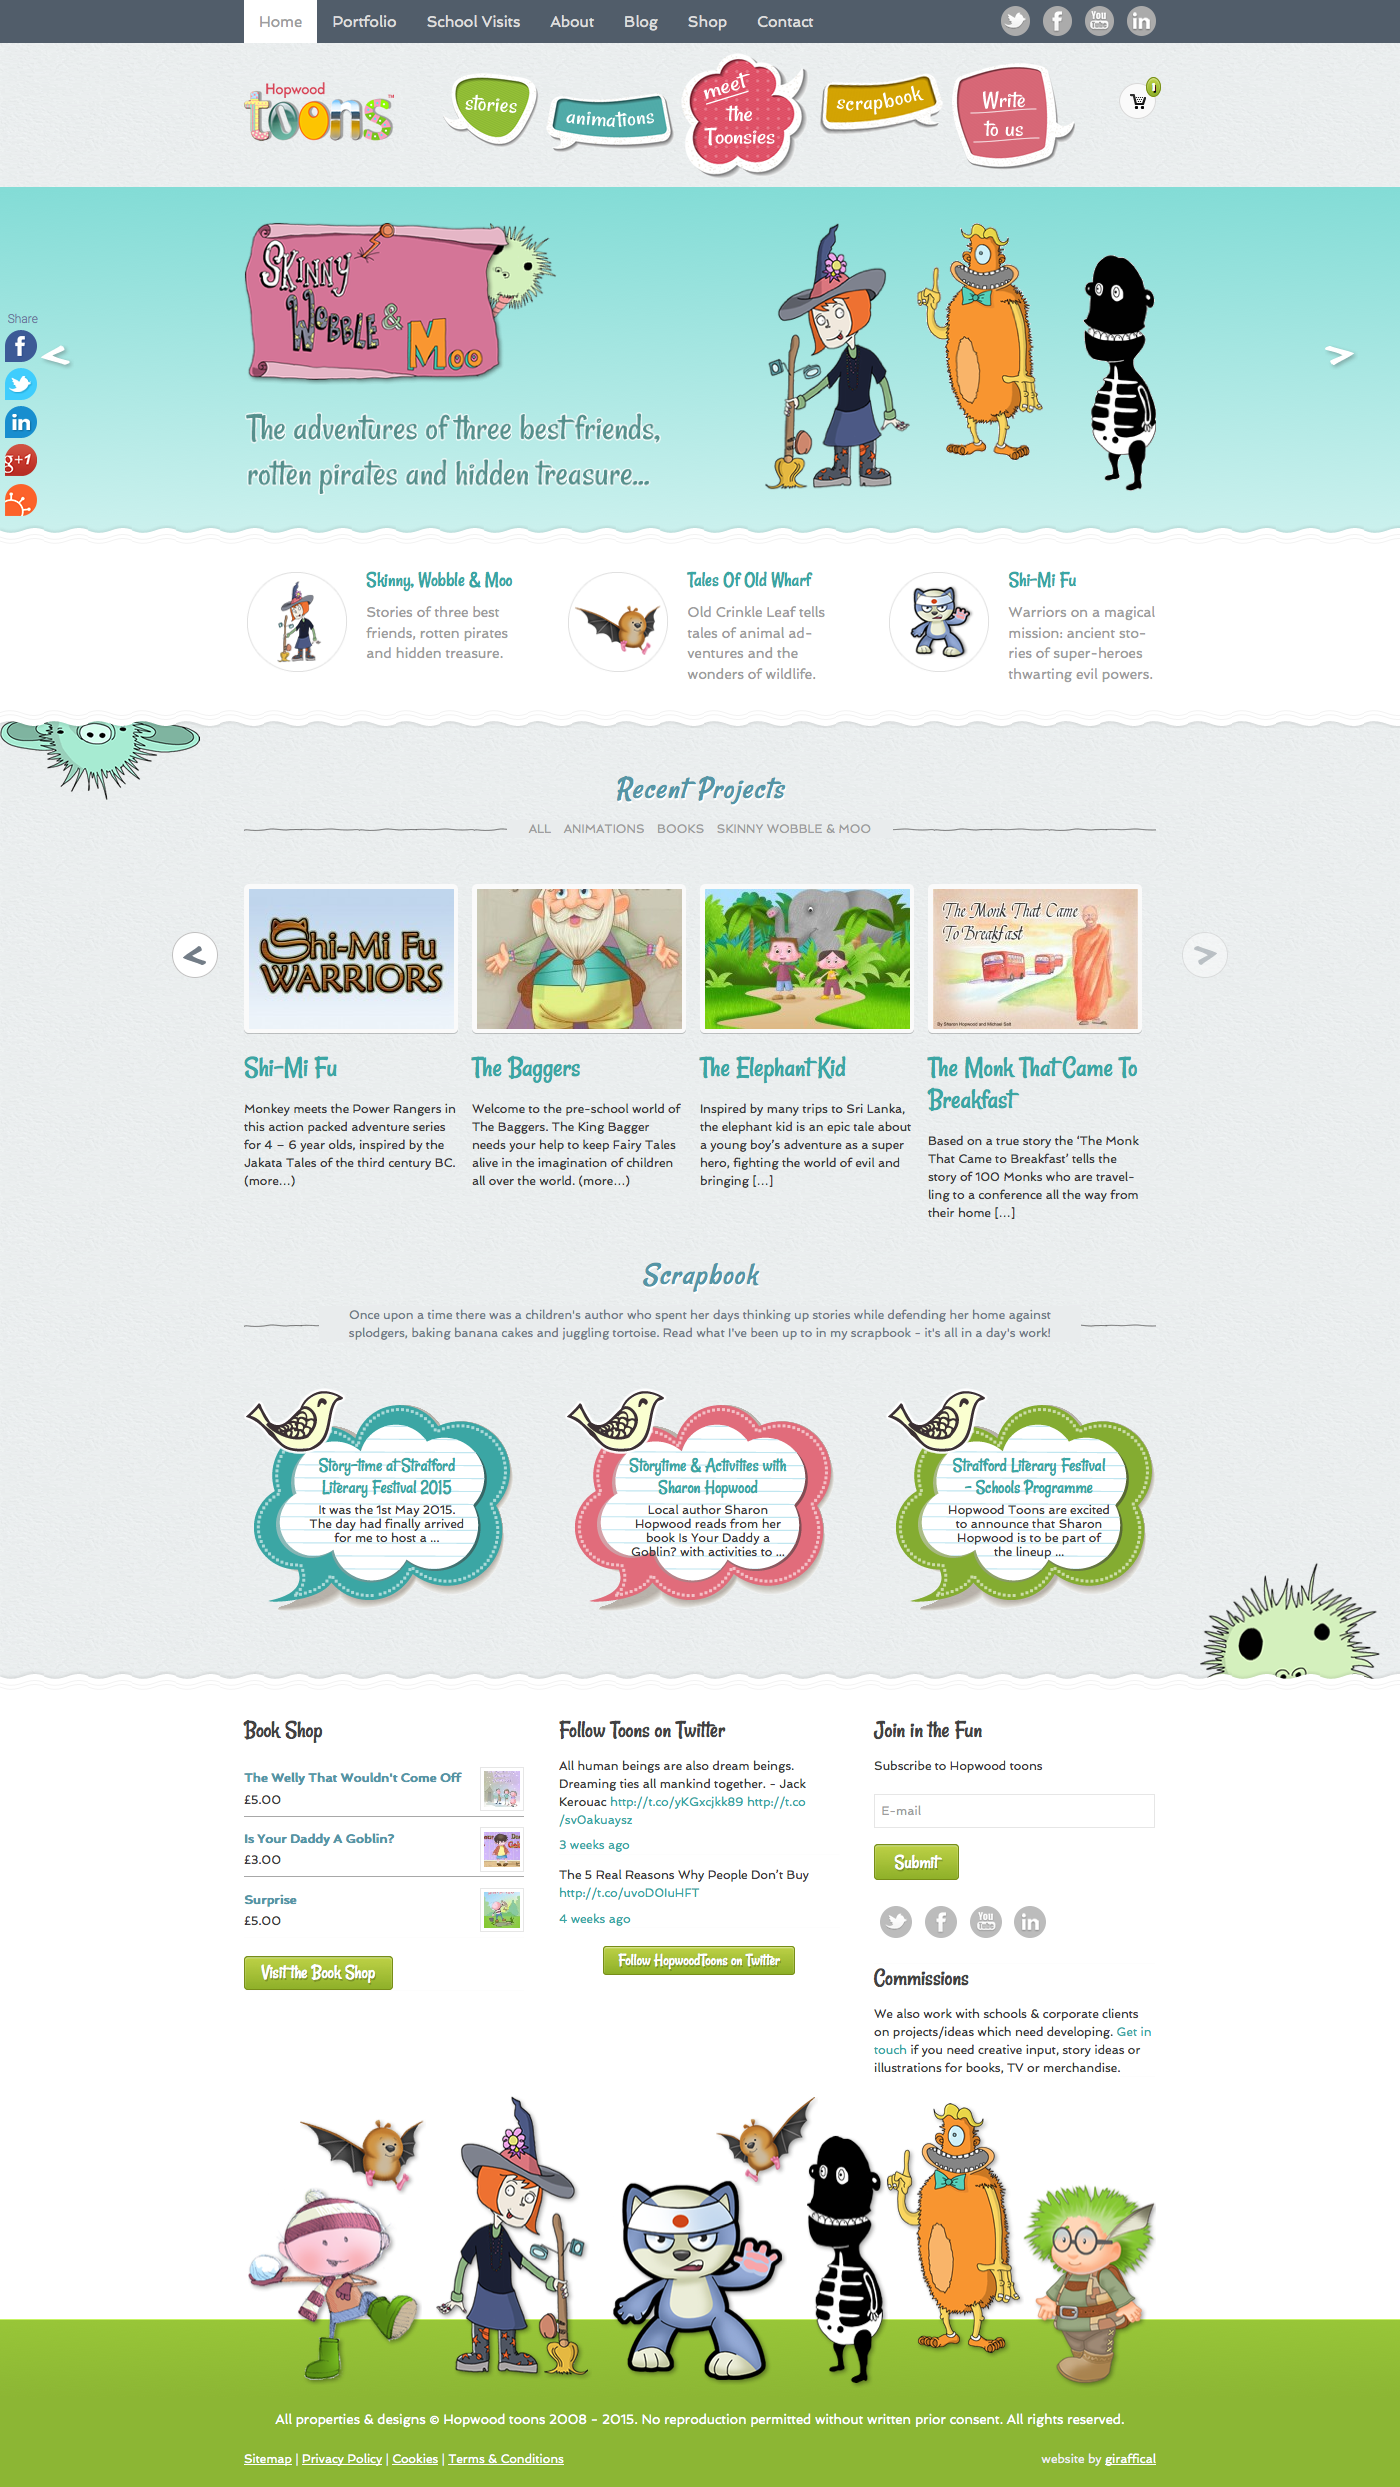 Hopwood Toons Website Redesign - Homepage